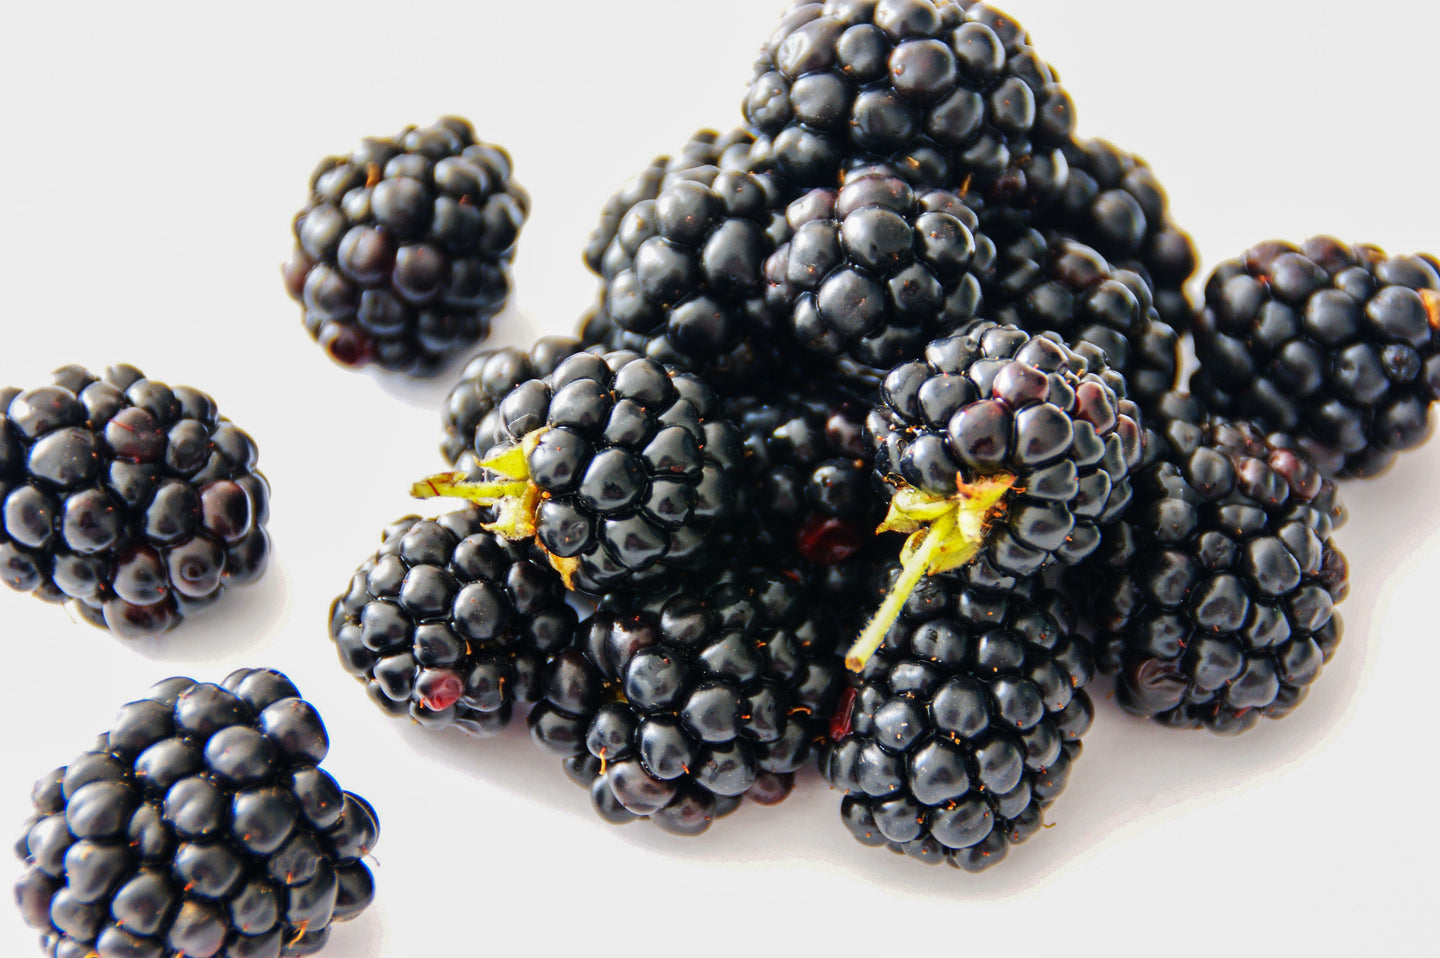 Case of Blackberries